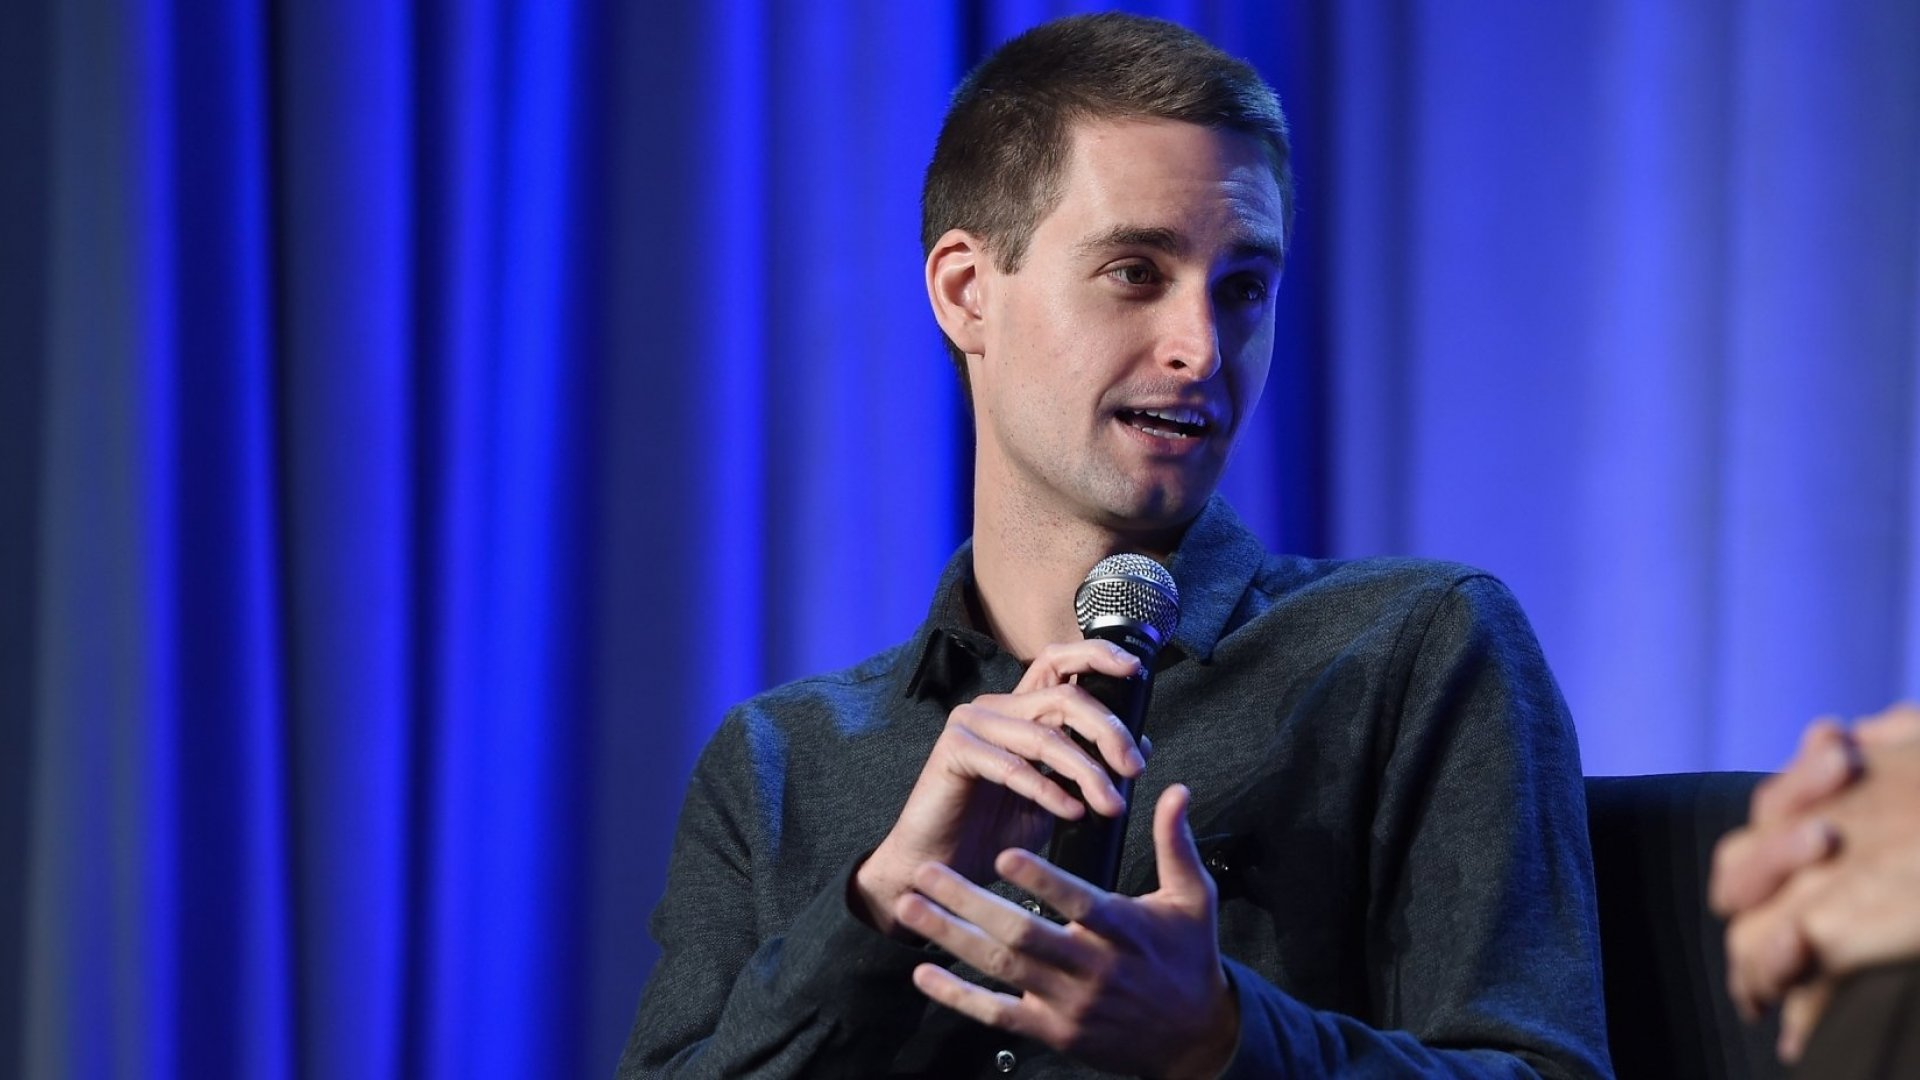 Often imitated, never duplicated: Snap Inc. founder Evan Spiegel